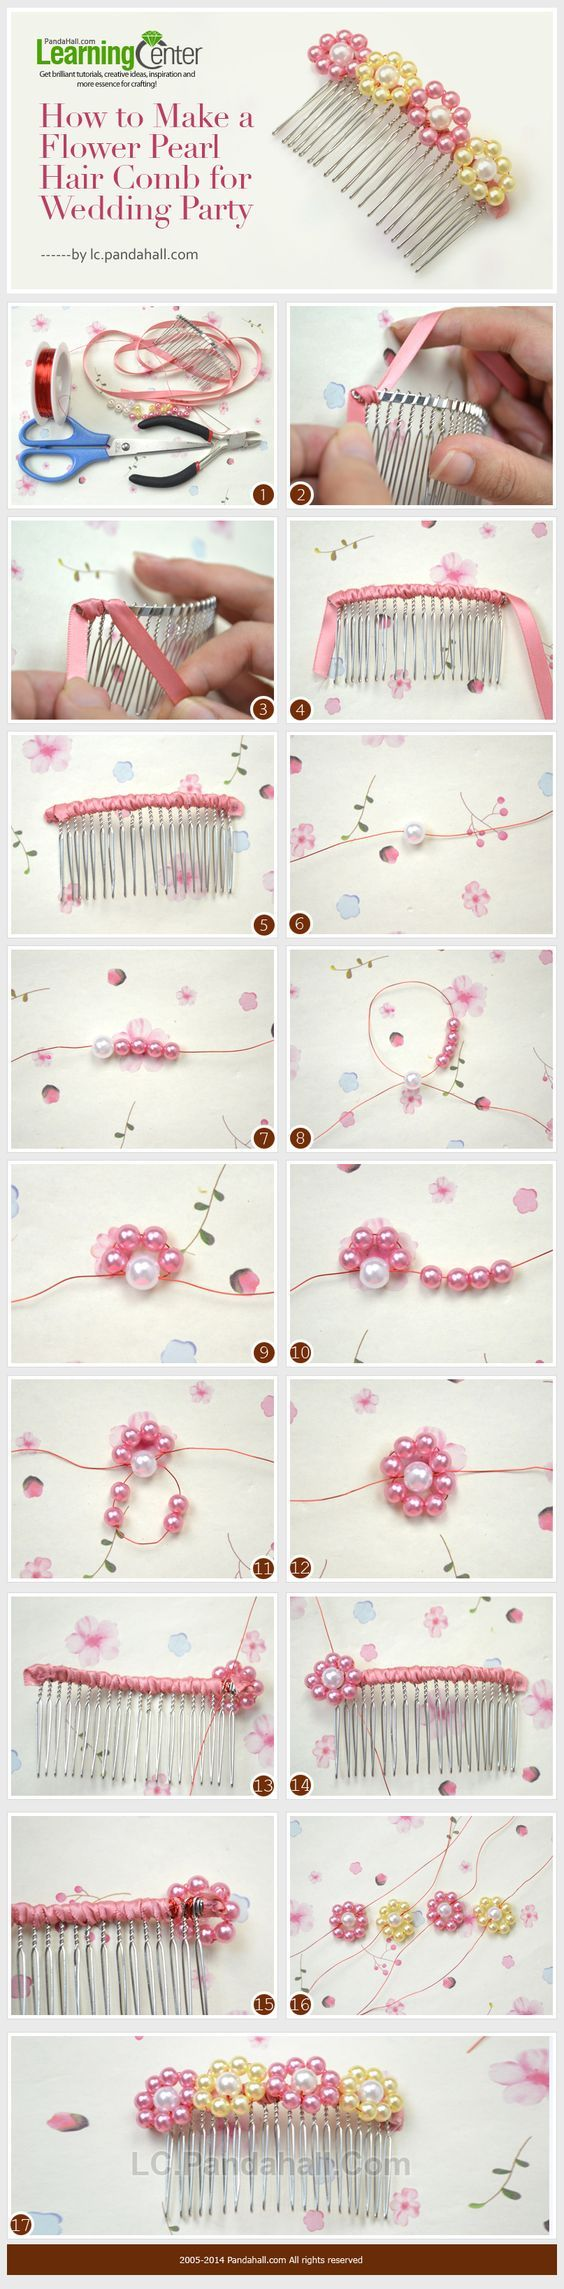 How to Make a Flower Pearl Hair Comb for Wedding Party: